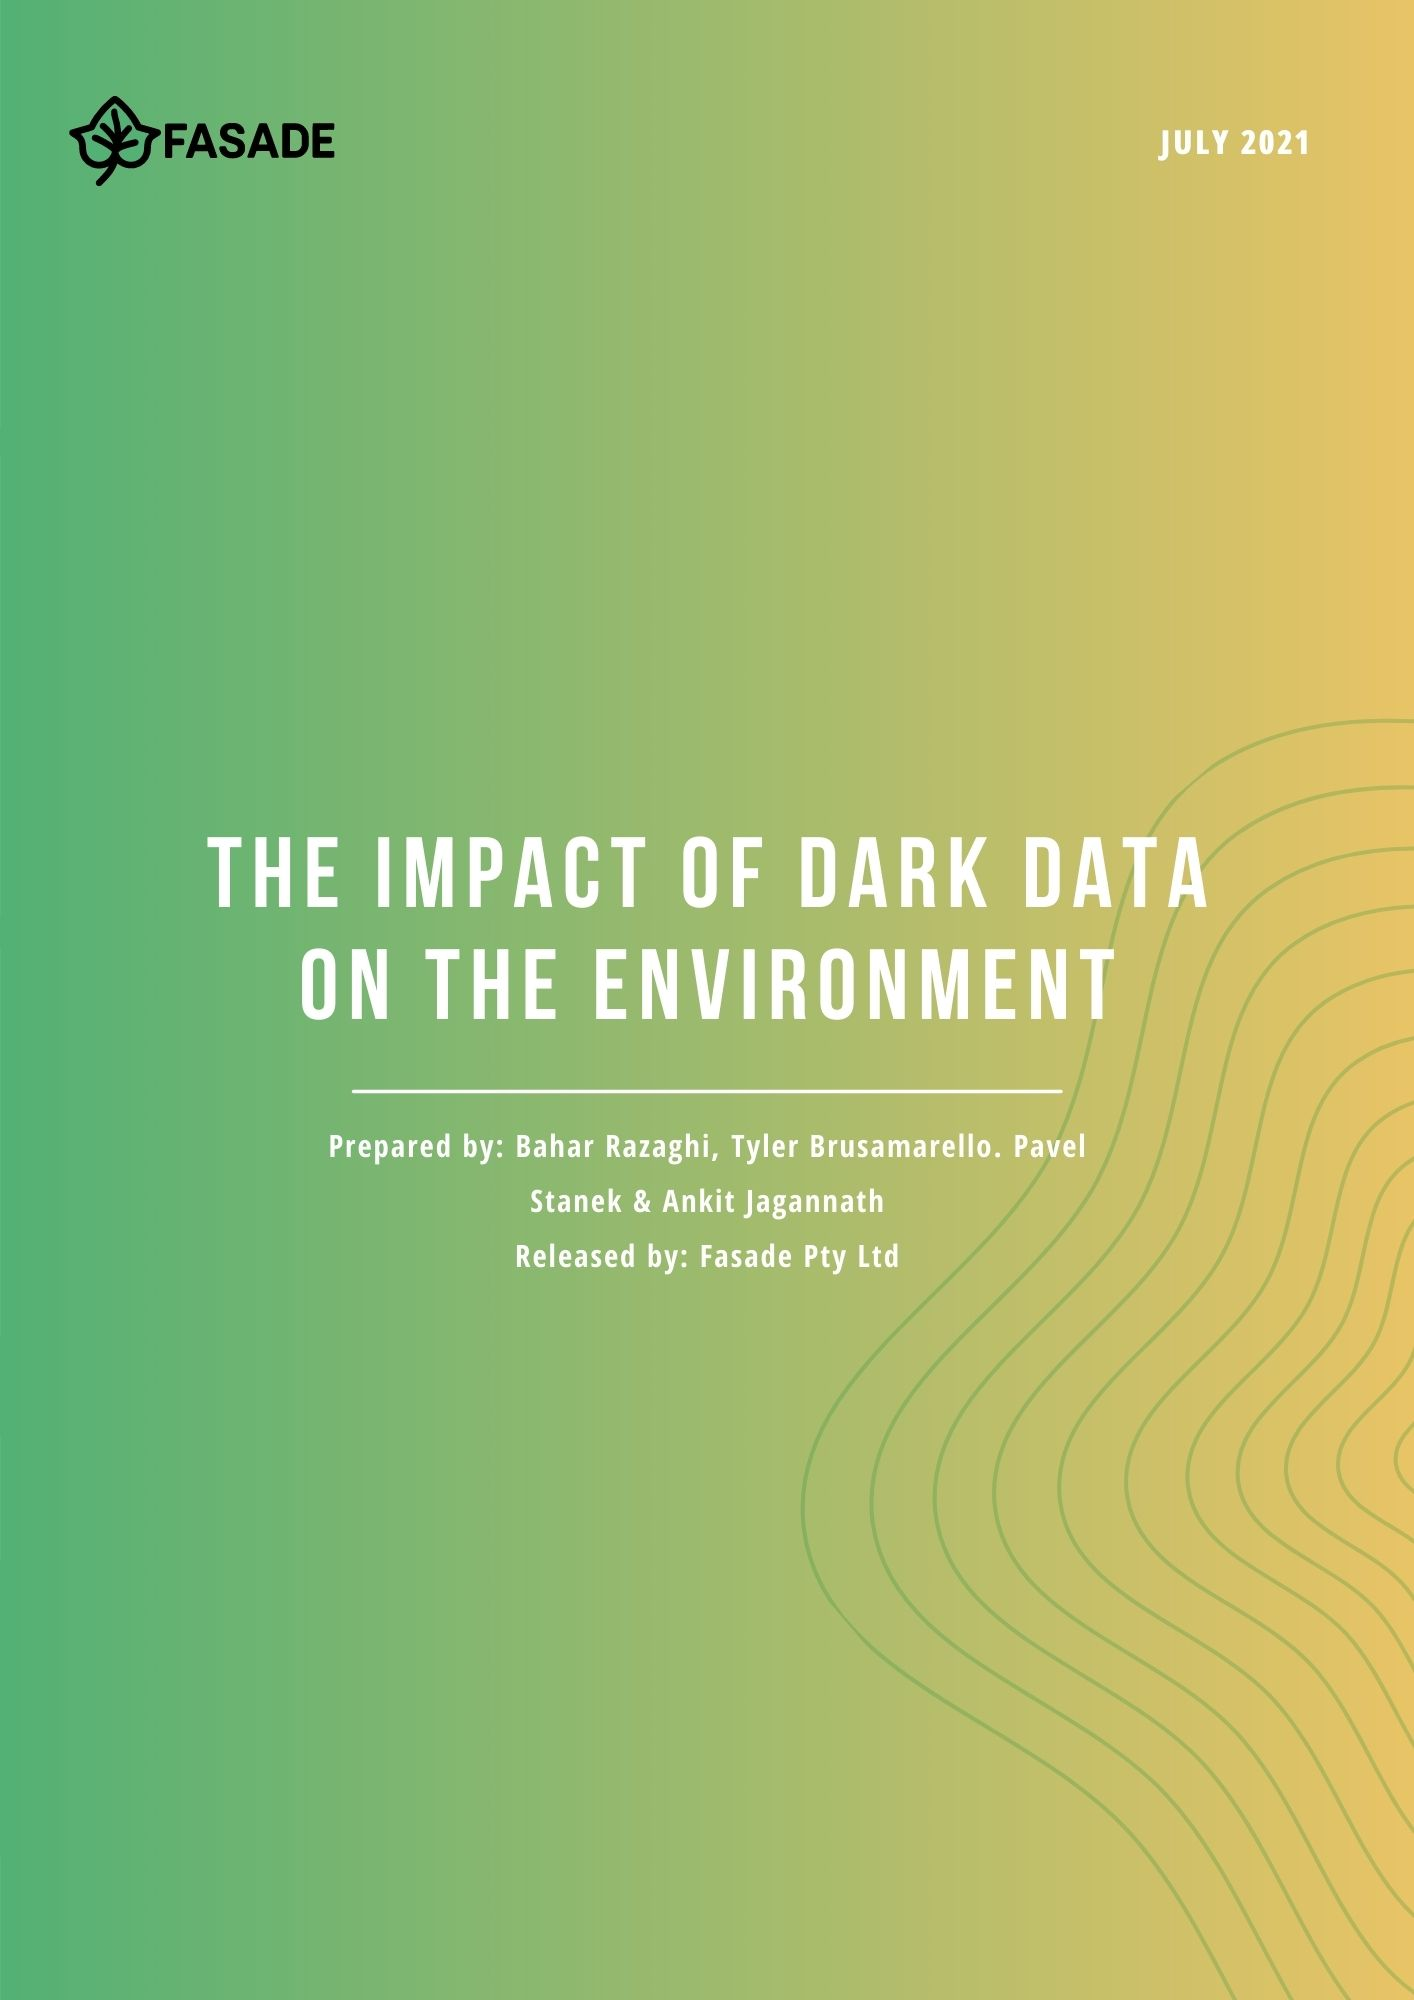 Fasade White Paper provides information on what the negative impacts of data on businesses are and how to deal with it.